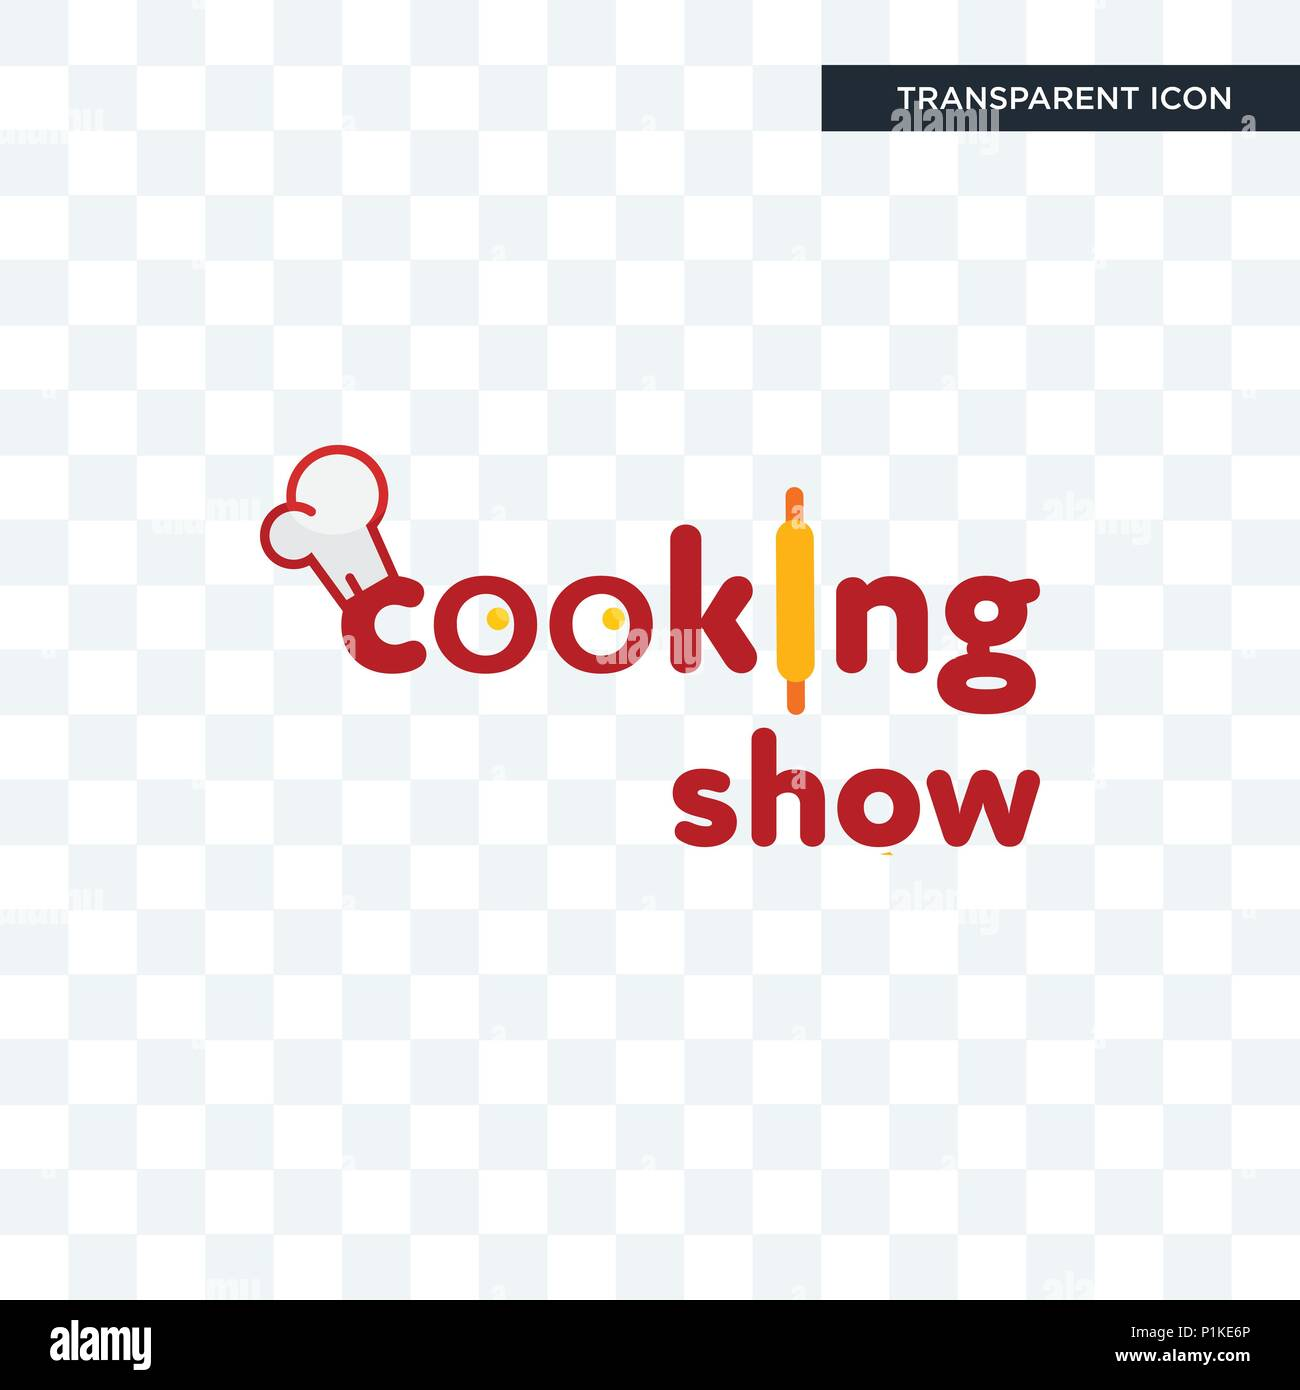 cooking show vector icon isolated on transparent background, cooking show logo concept - Stock Image